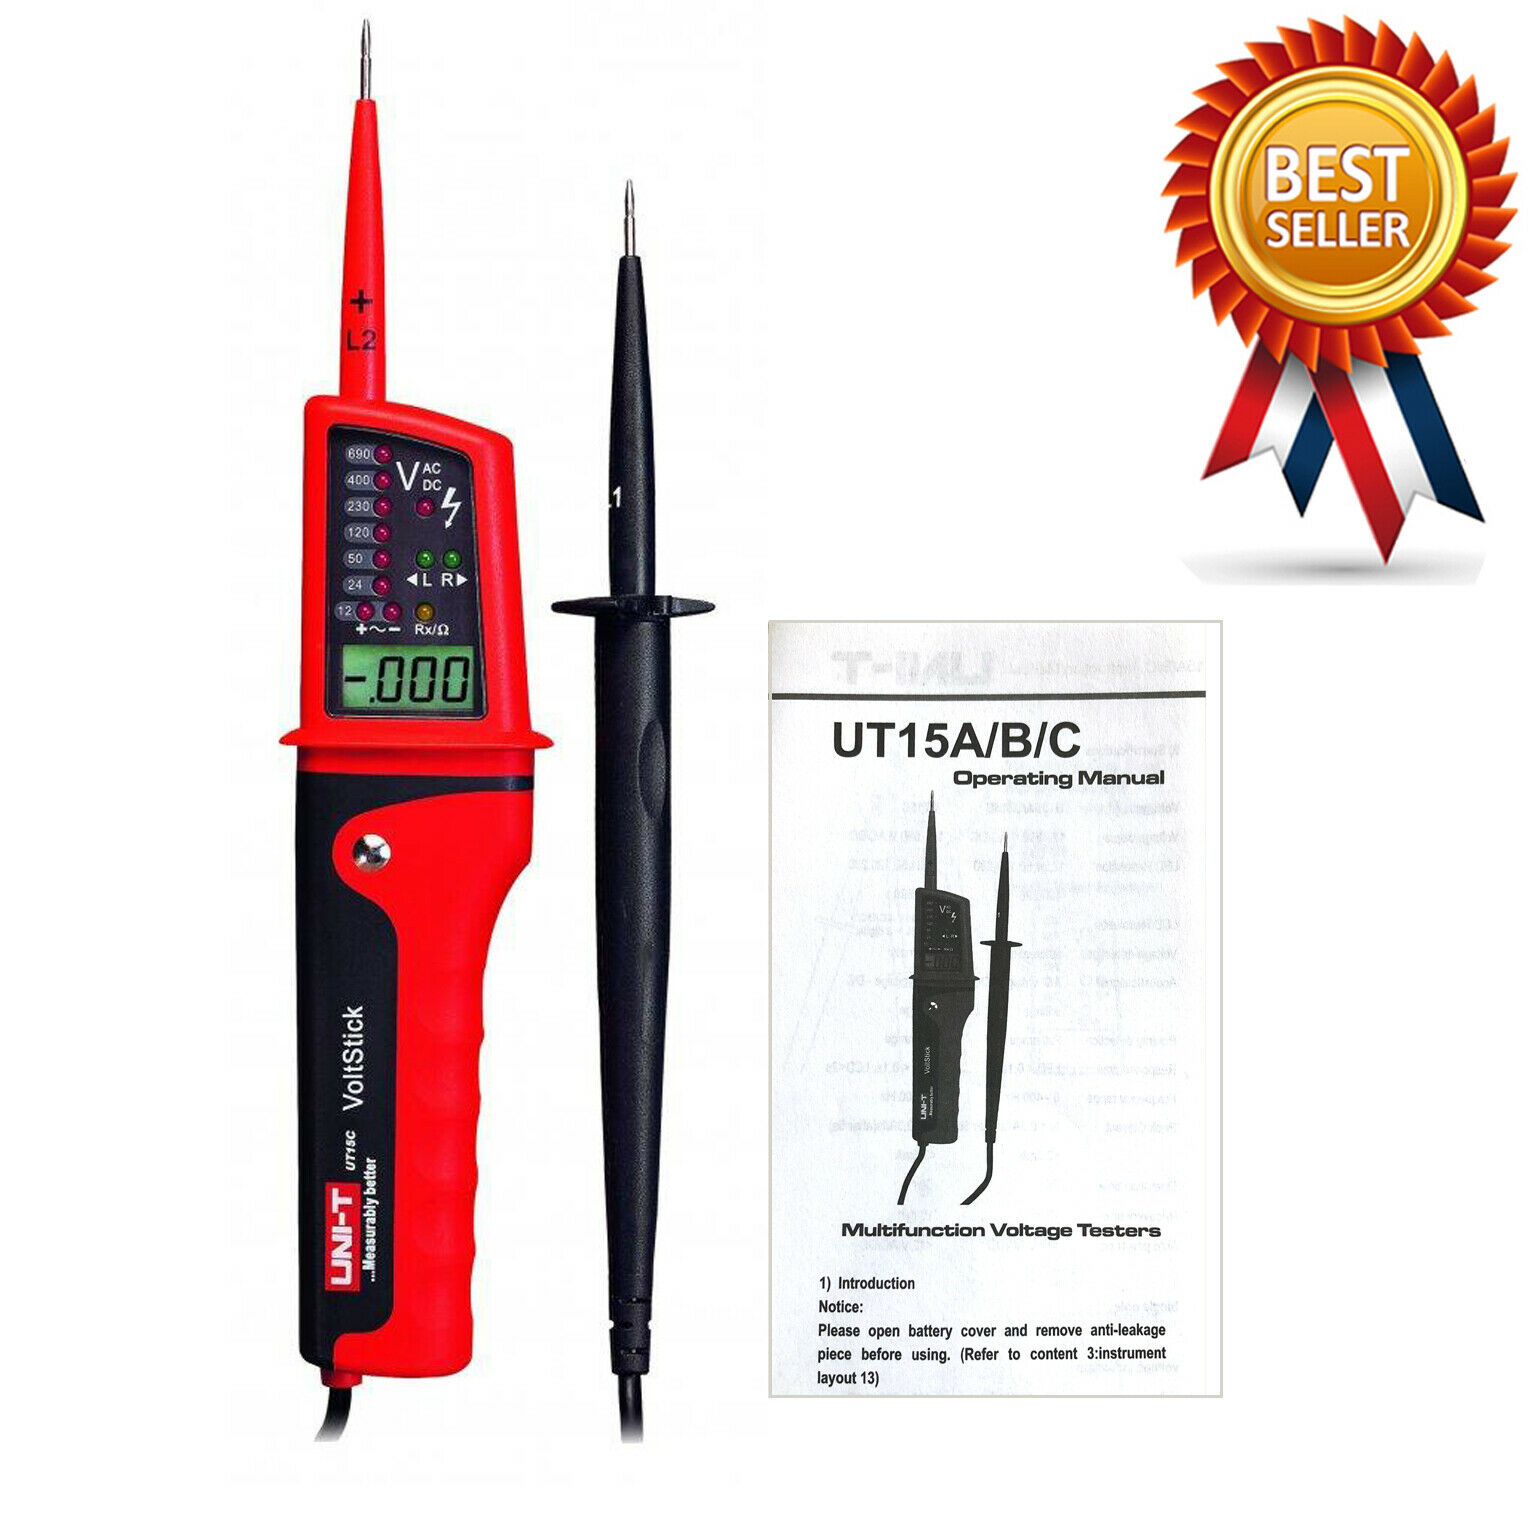 uni t ut15c waterproof type voltage testers